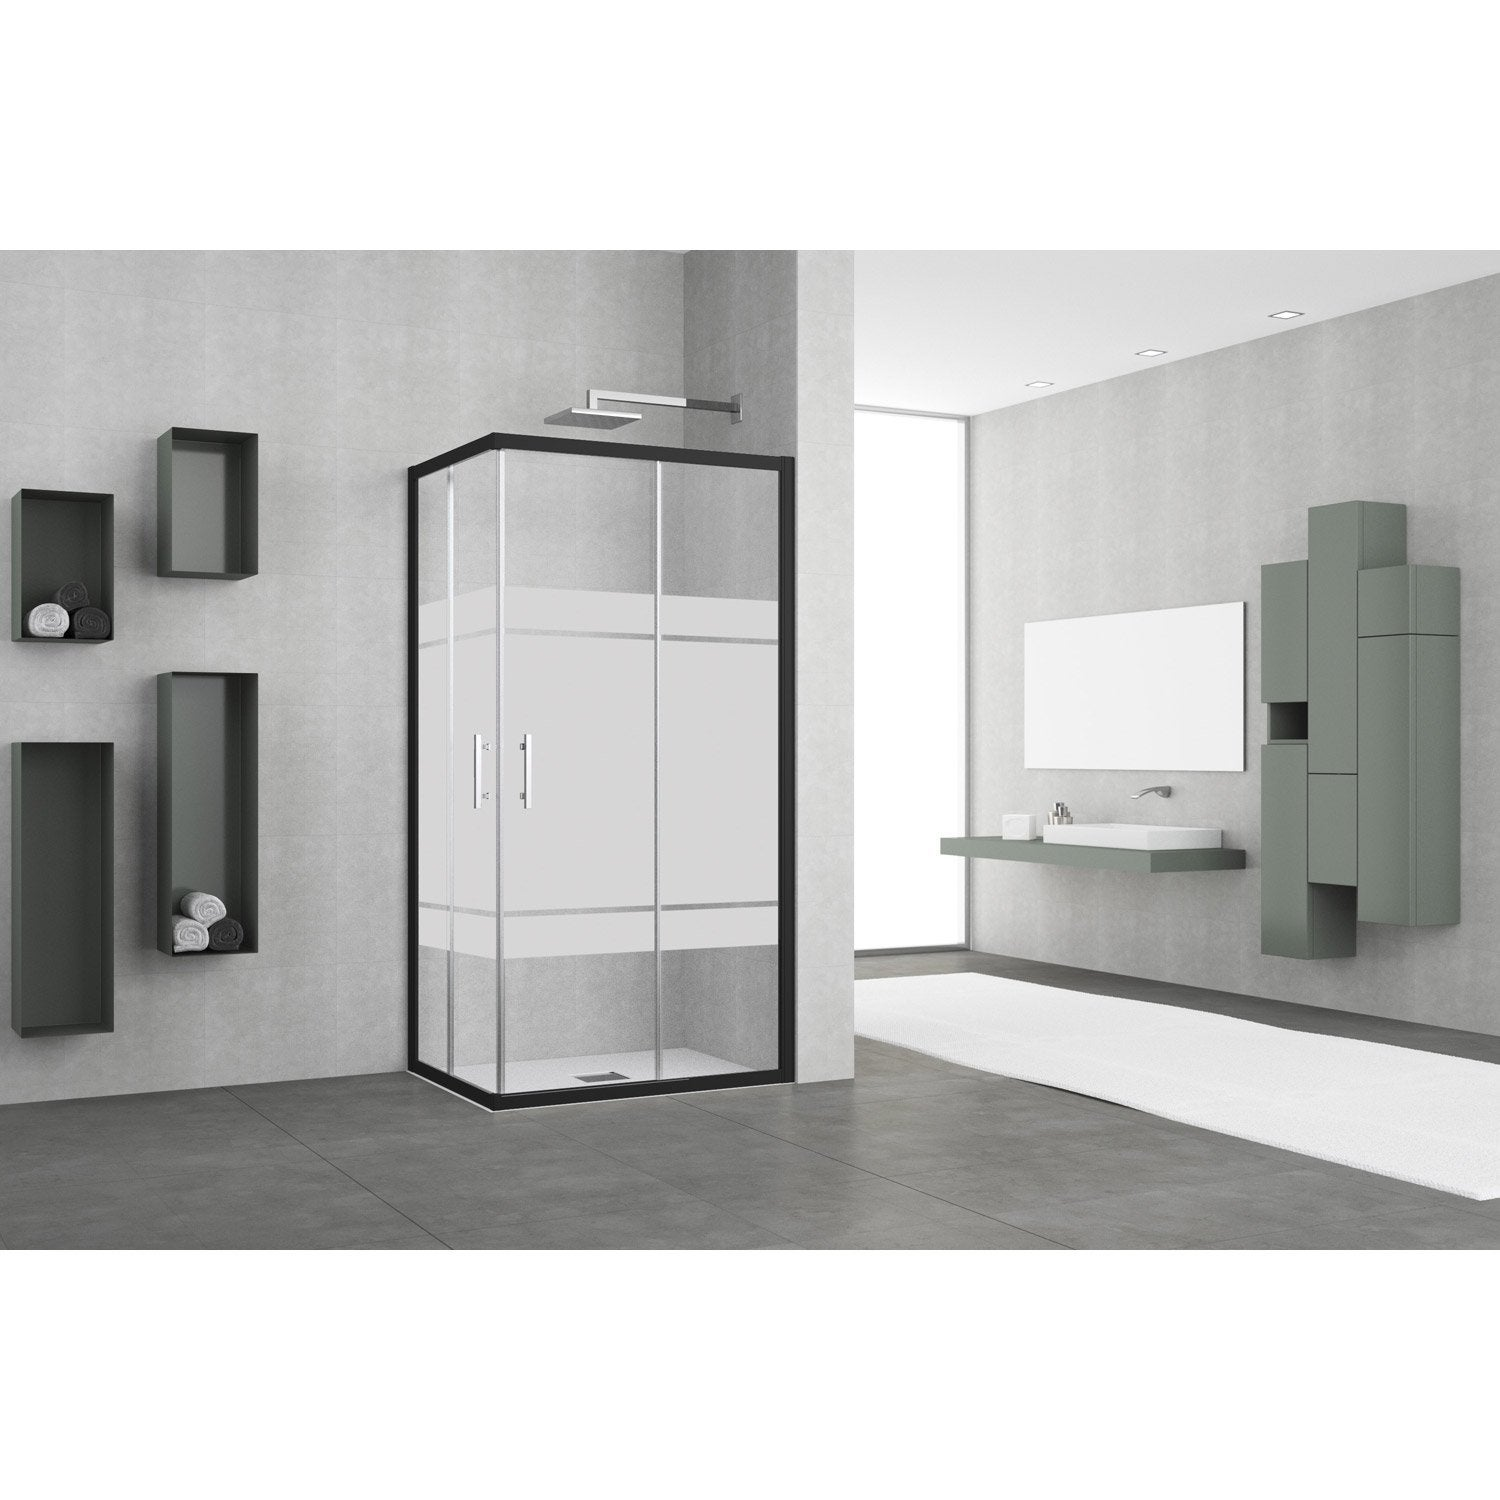 Porte de douche coulissante angle rectangle x cm noir elyt le - Porte coulissante douche 100 ...